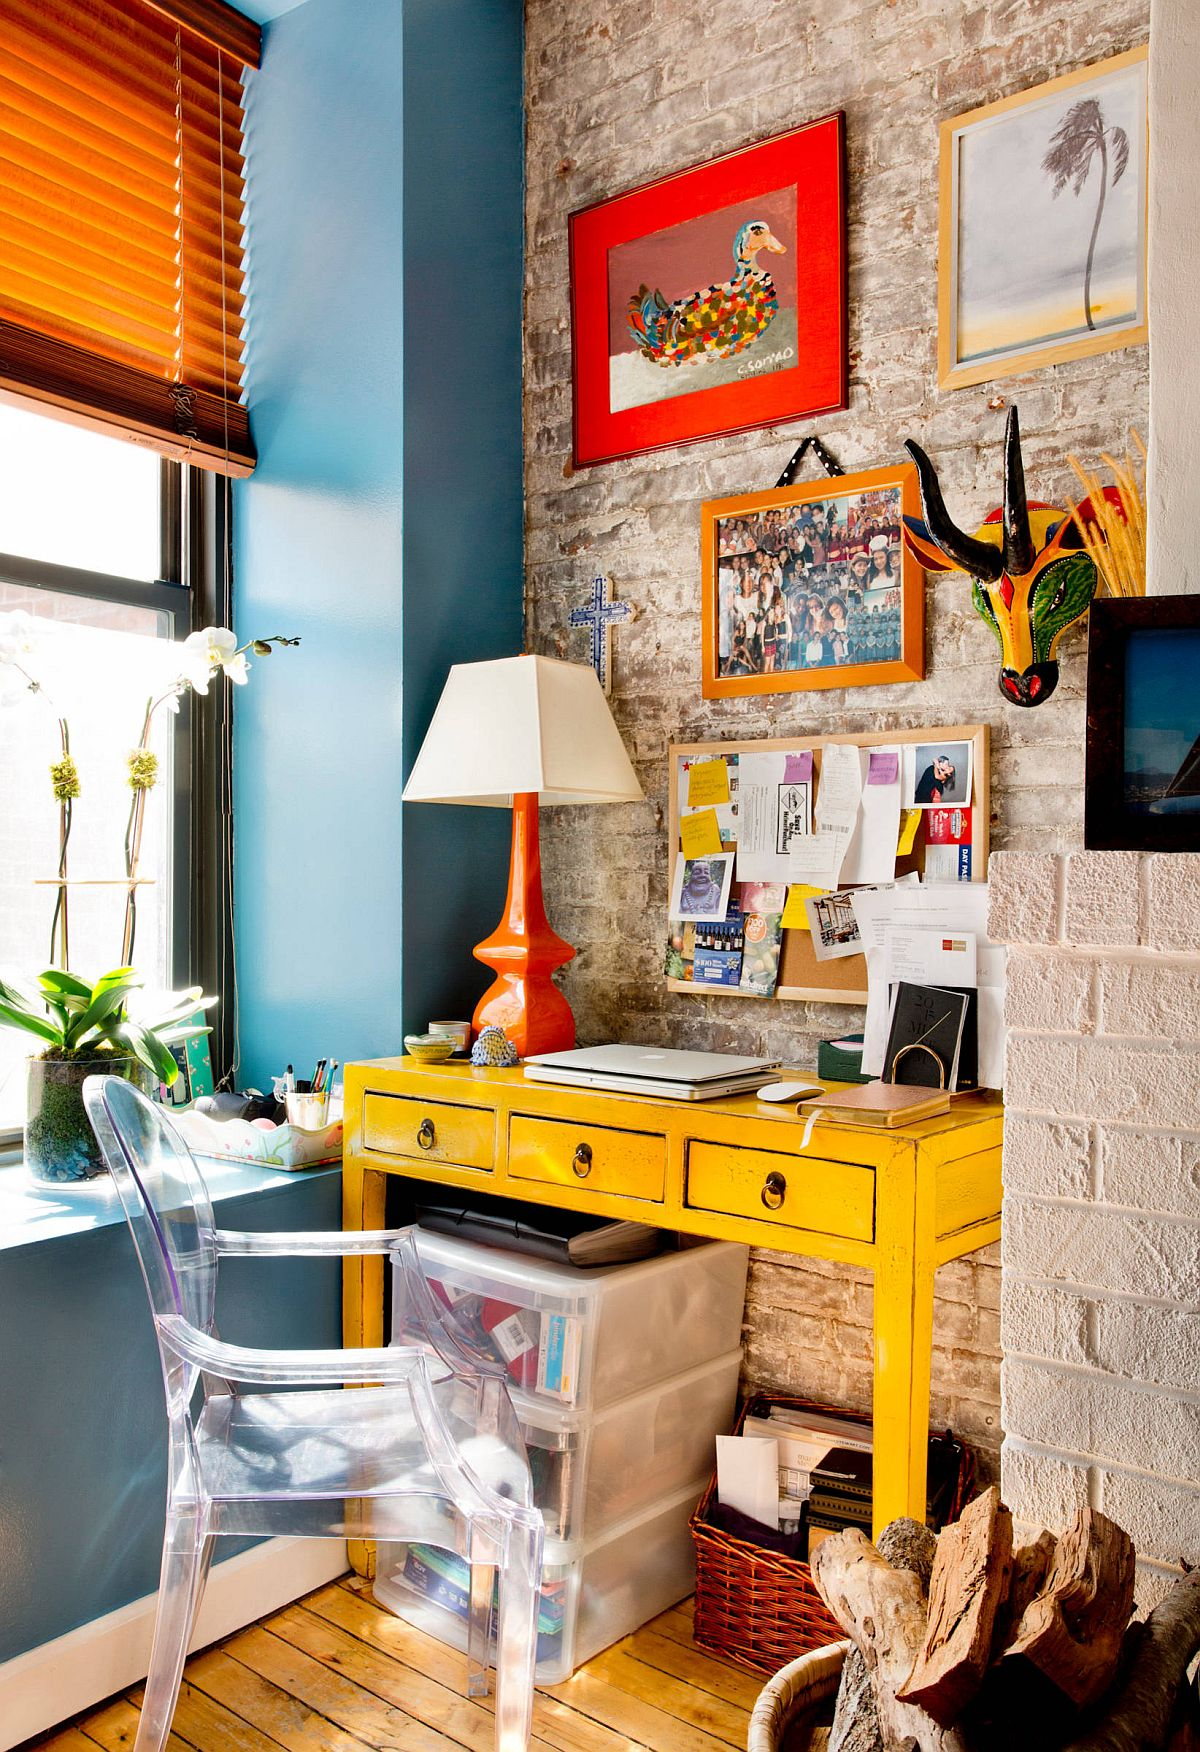 Eclectic mix of fabulous yellow desk and bright orange table lamp inside modern New York home office